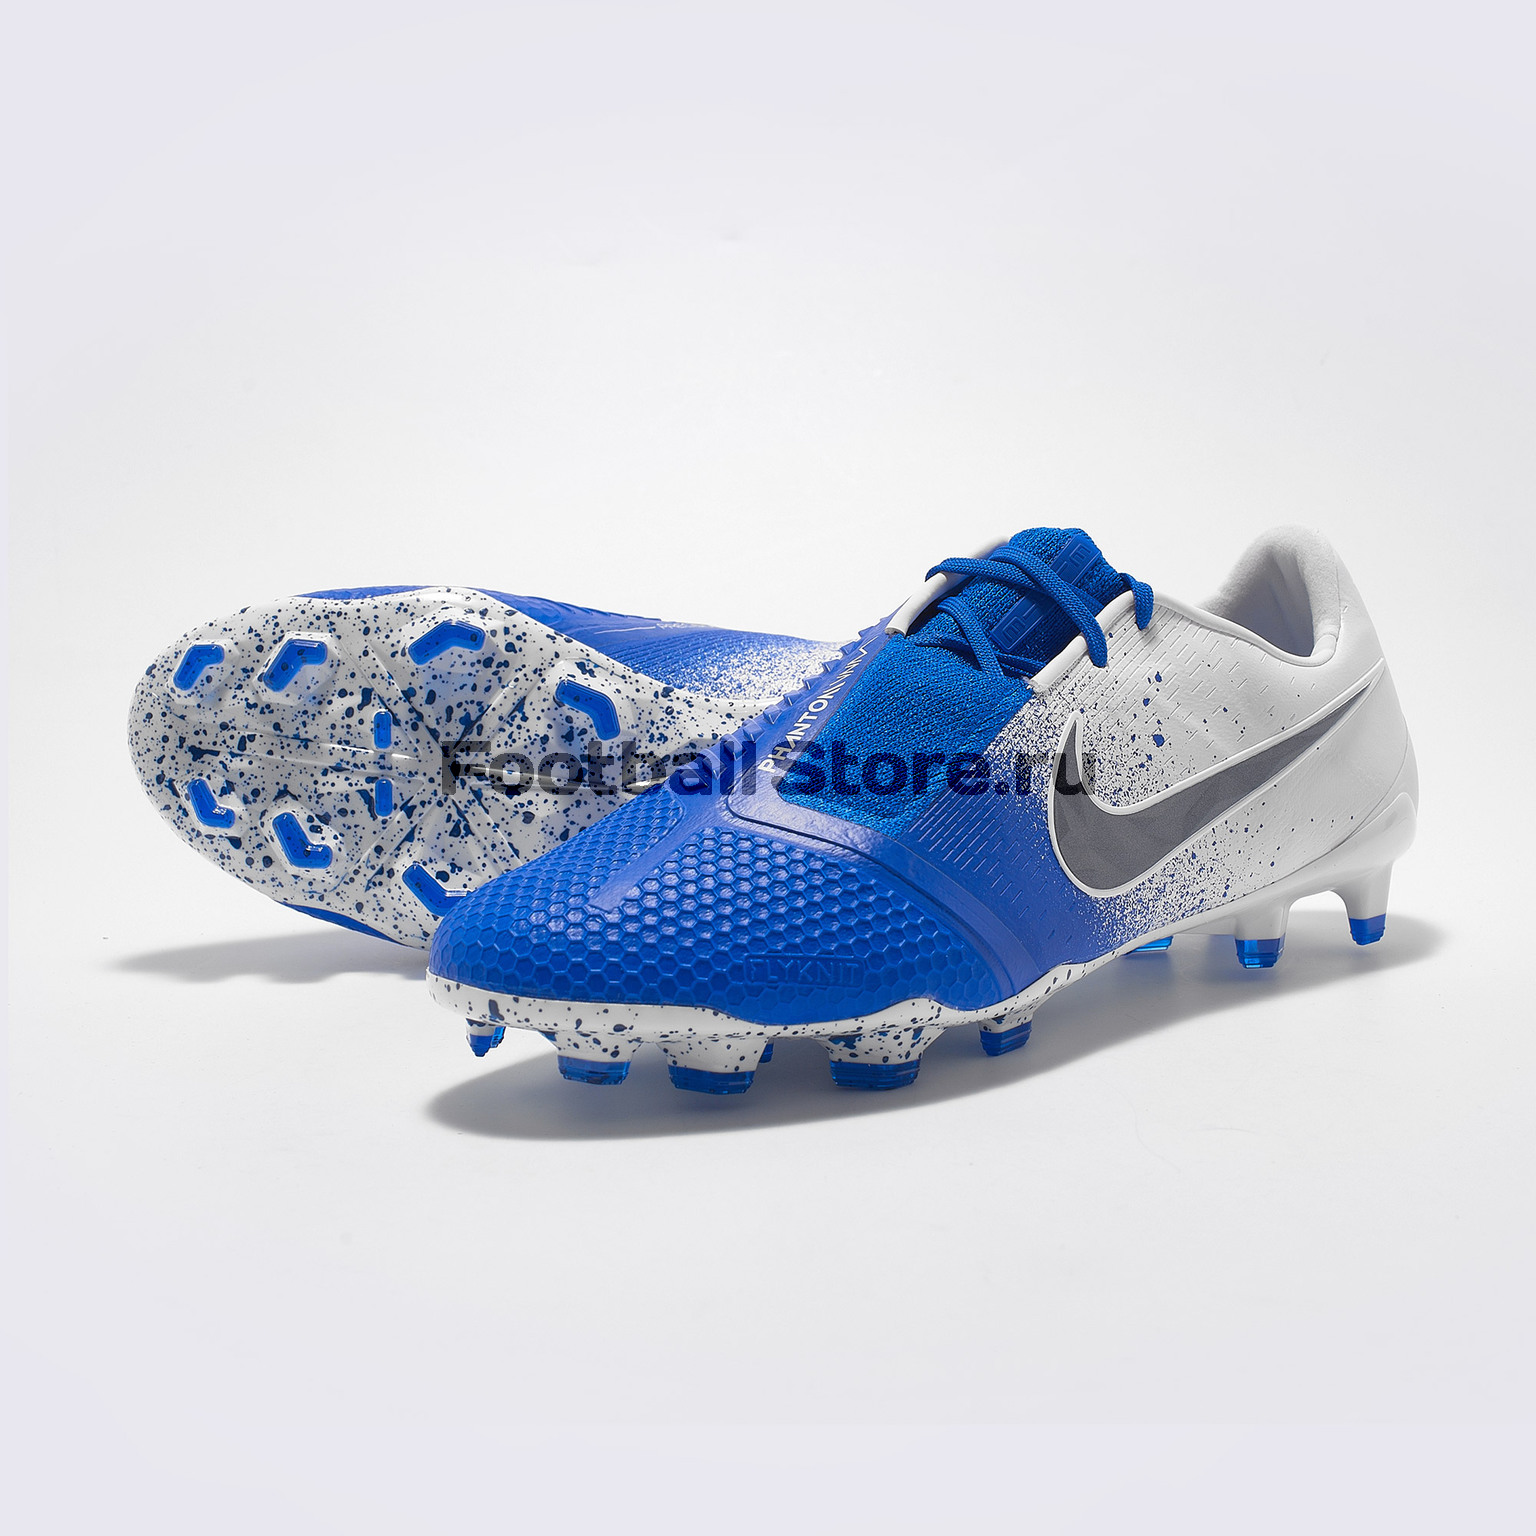 Бутсы Nike Phantom Venom Elite FG AO7540-104